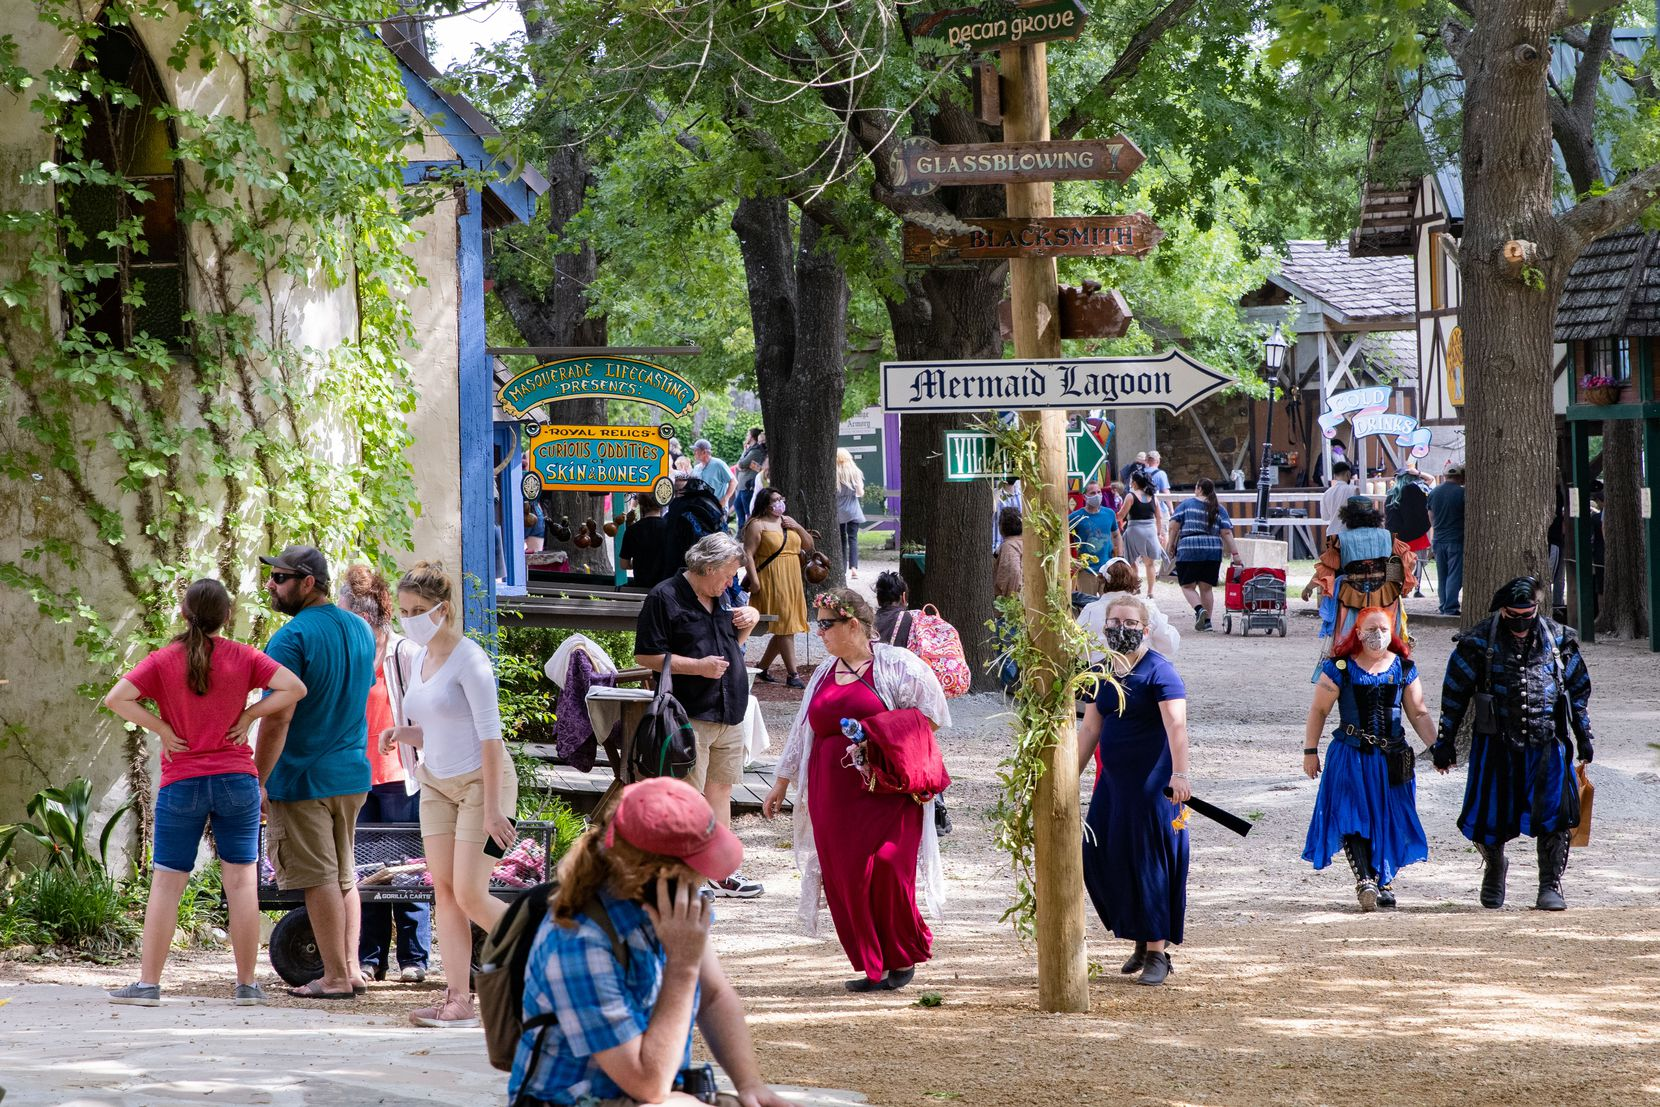 Wear a T-shirt and shorts or go all-out in a period costume. Either way, you'll find something to muse about at Scarborough Renaissance Festival.